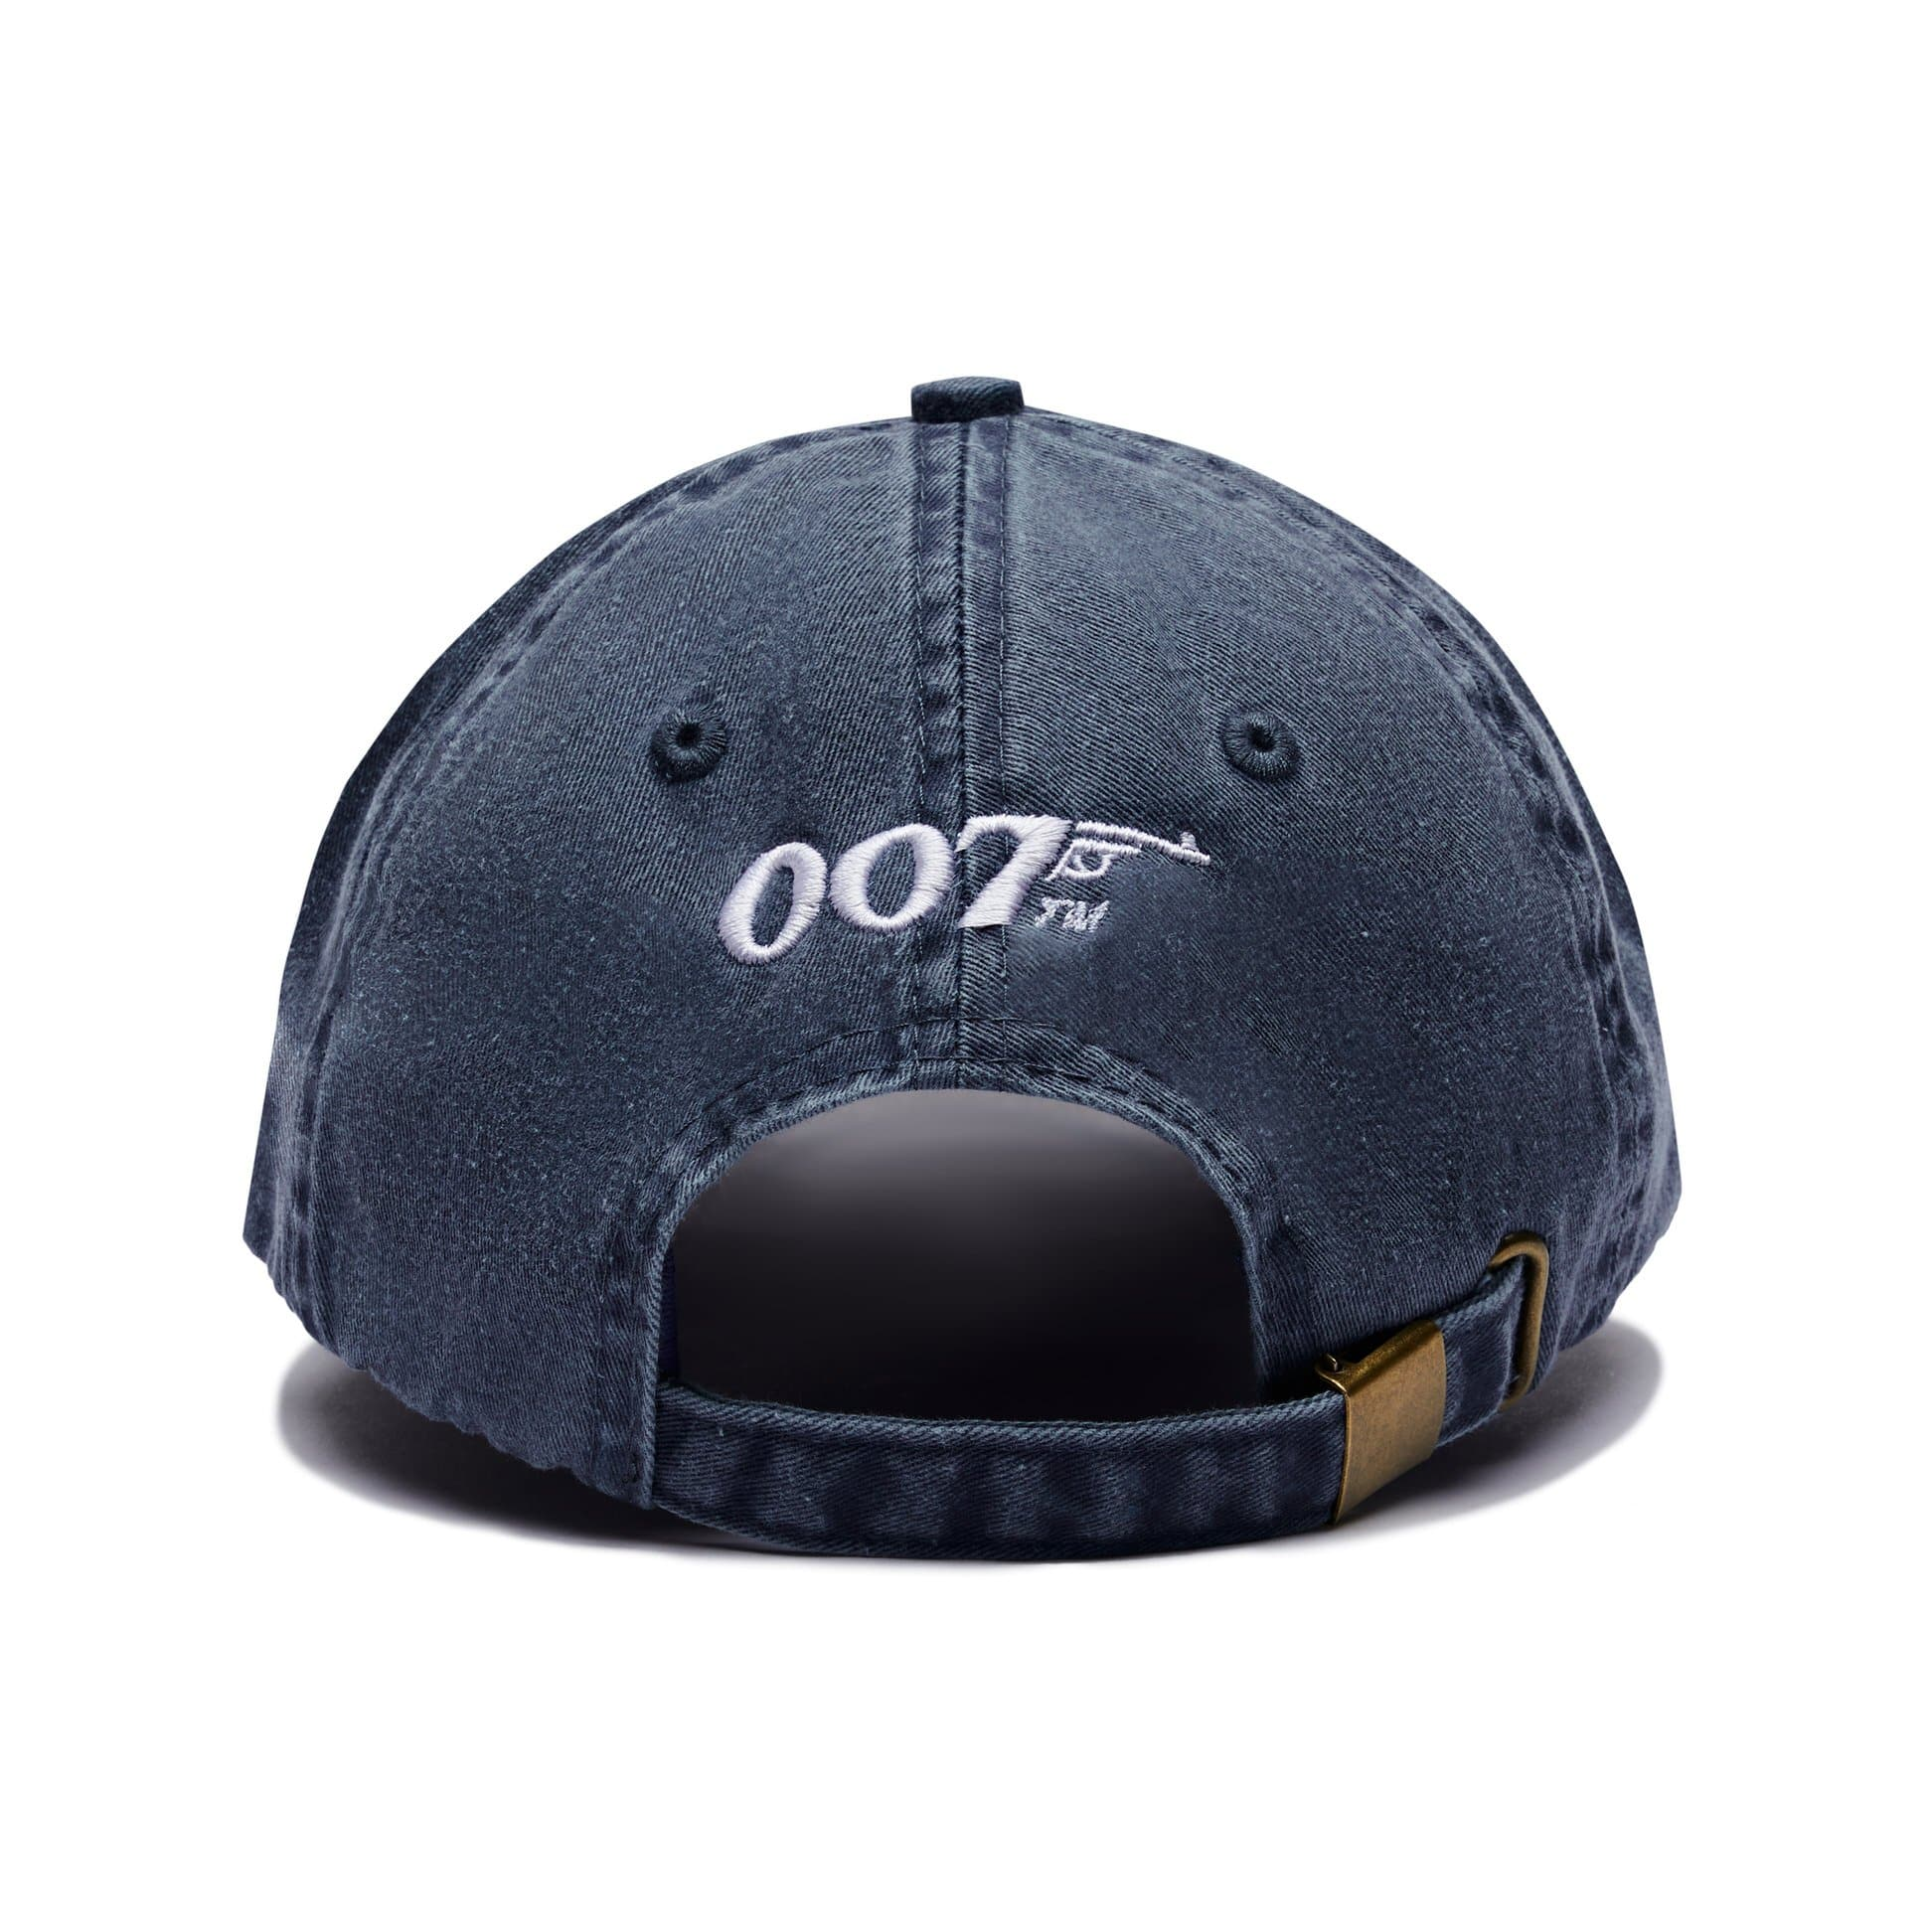 Retro 007 Logo Embroidered Baseball Cap - Denim Blue